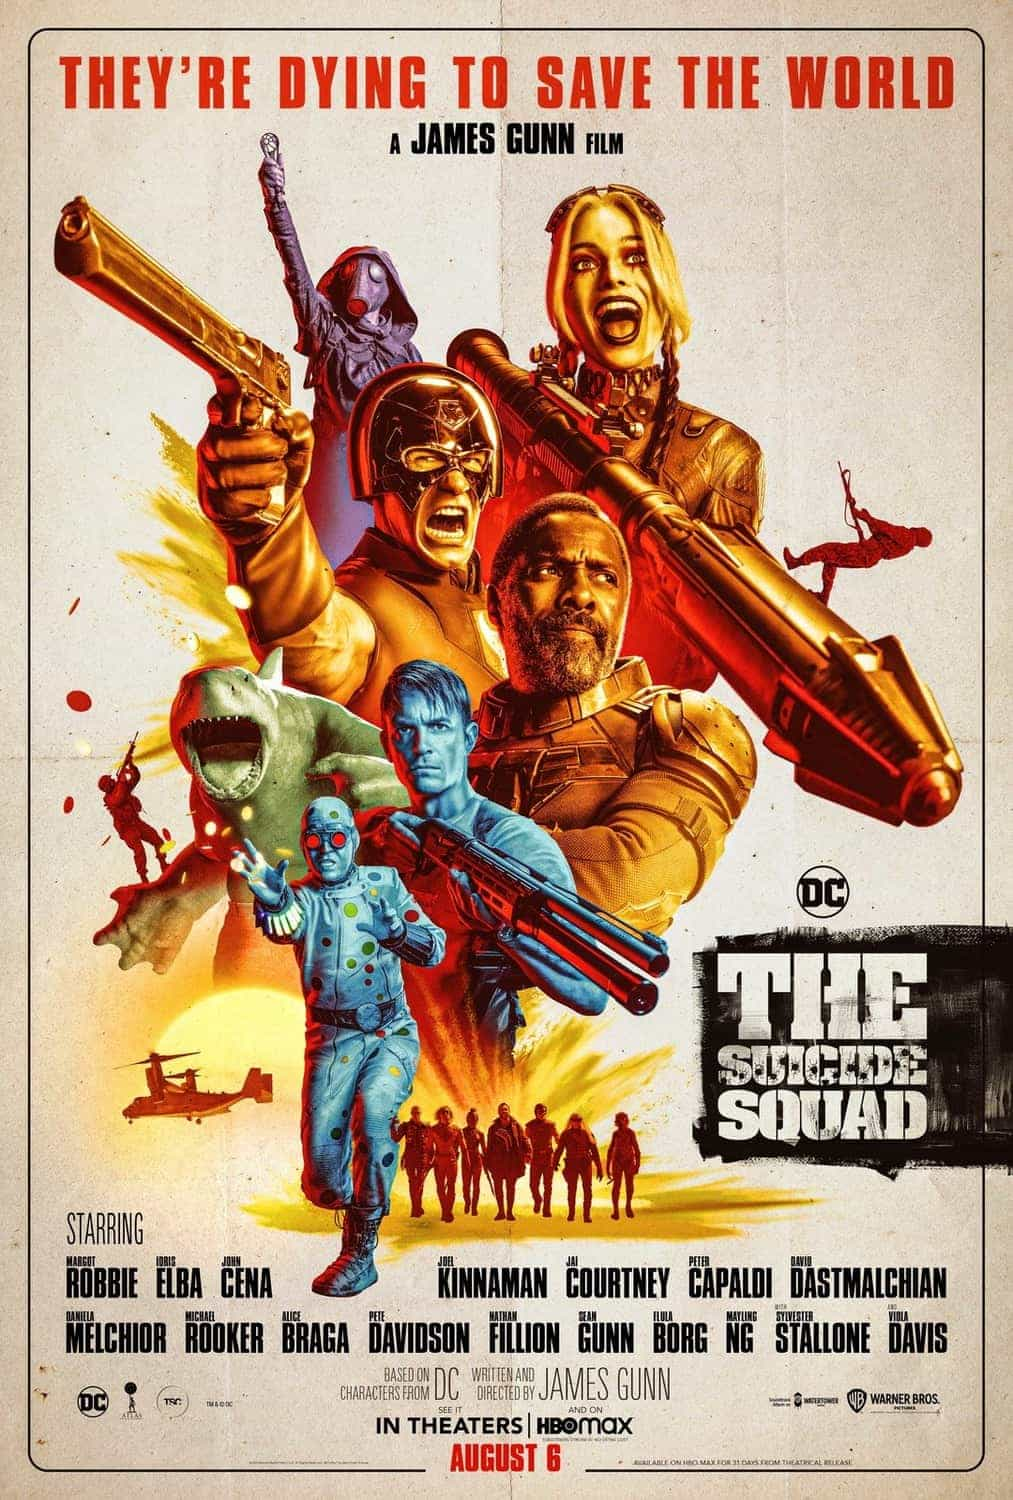 The Suicide Squad is given a 15 age rating in the UK for strong bloody violence, gore, language, brief drug misuse